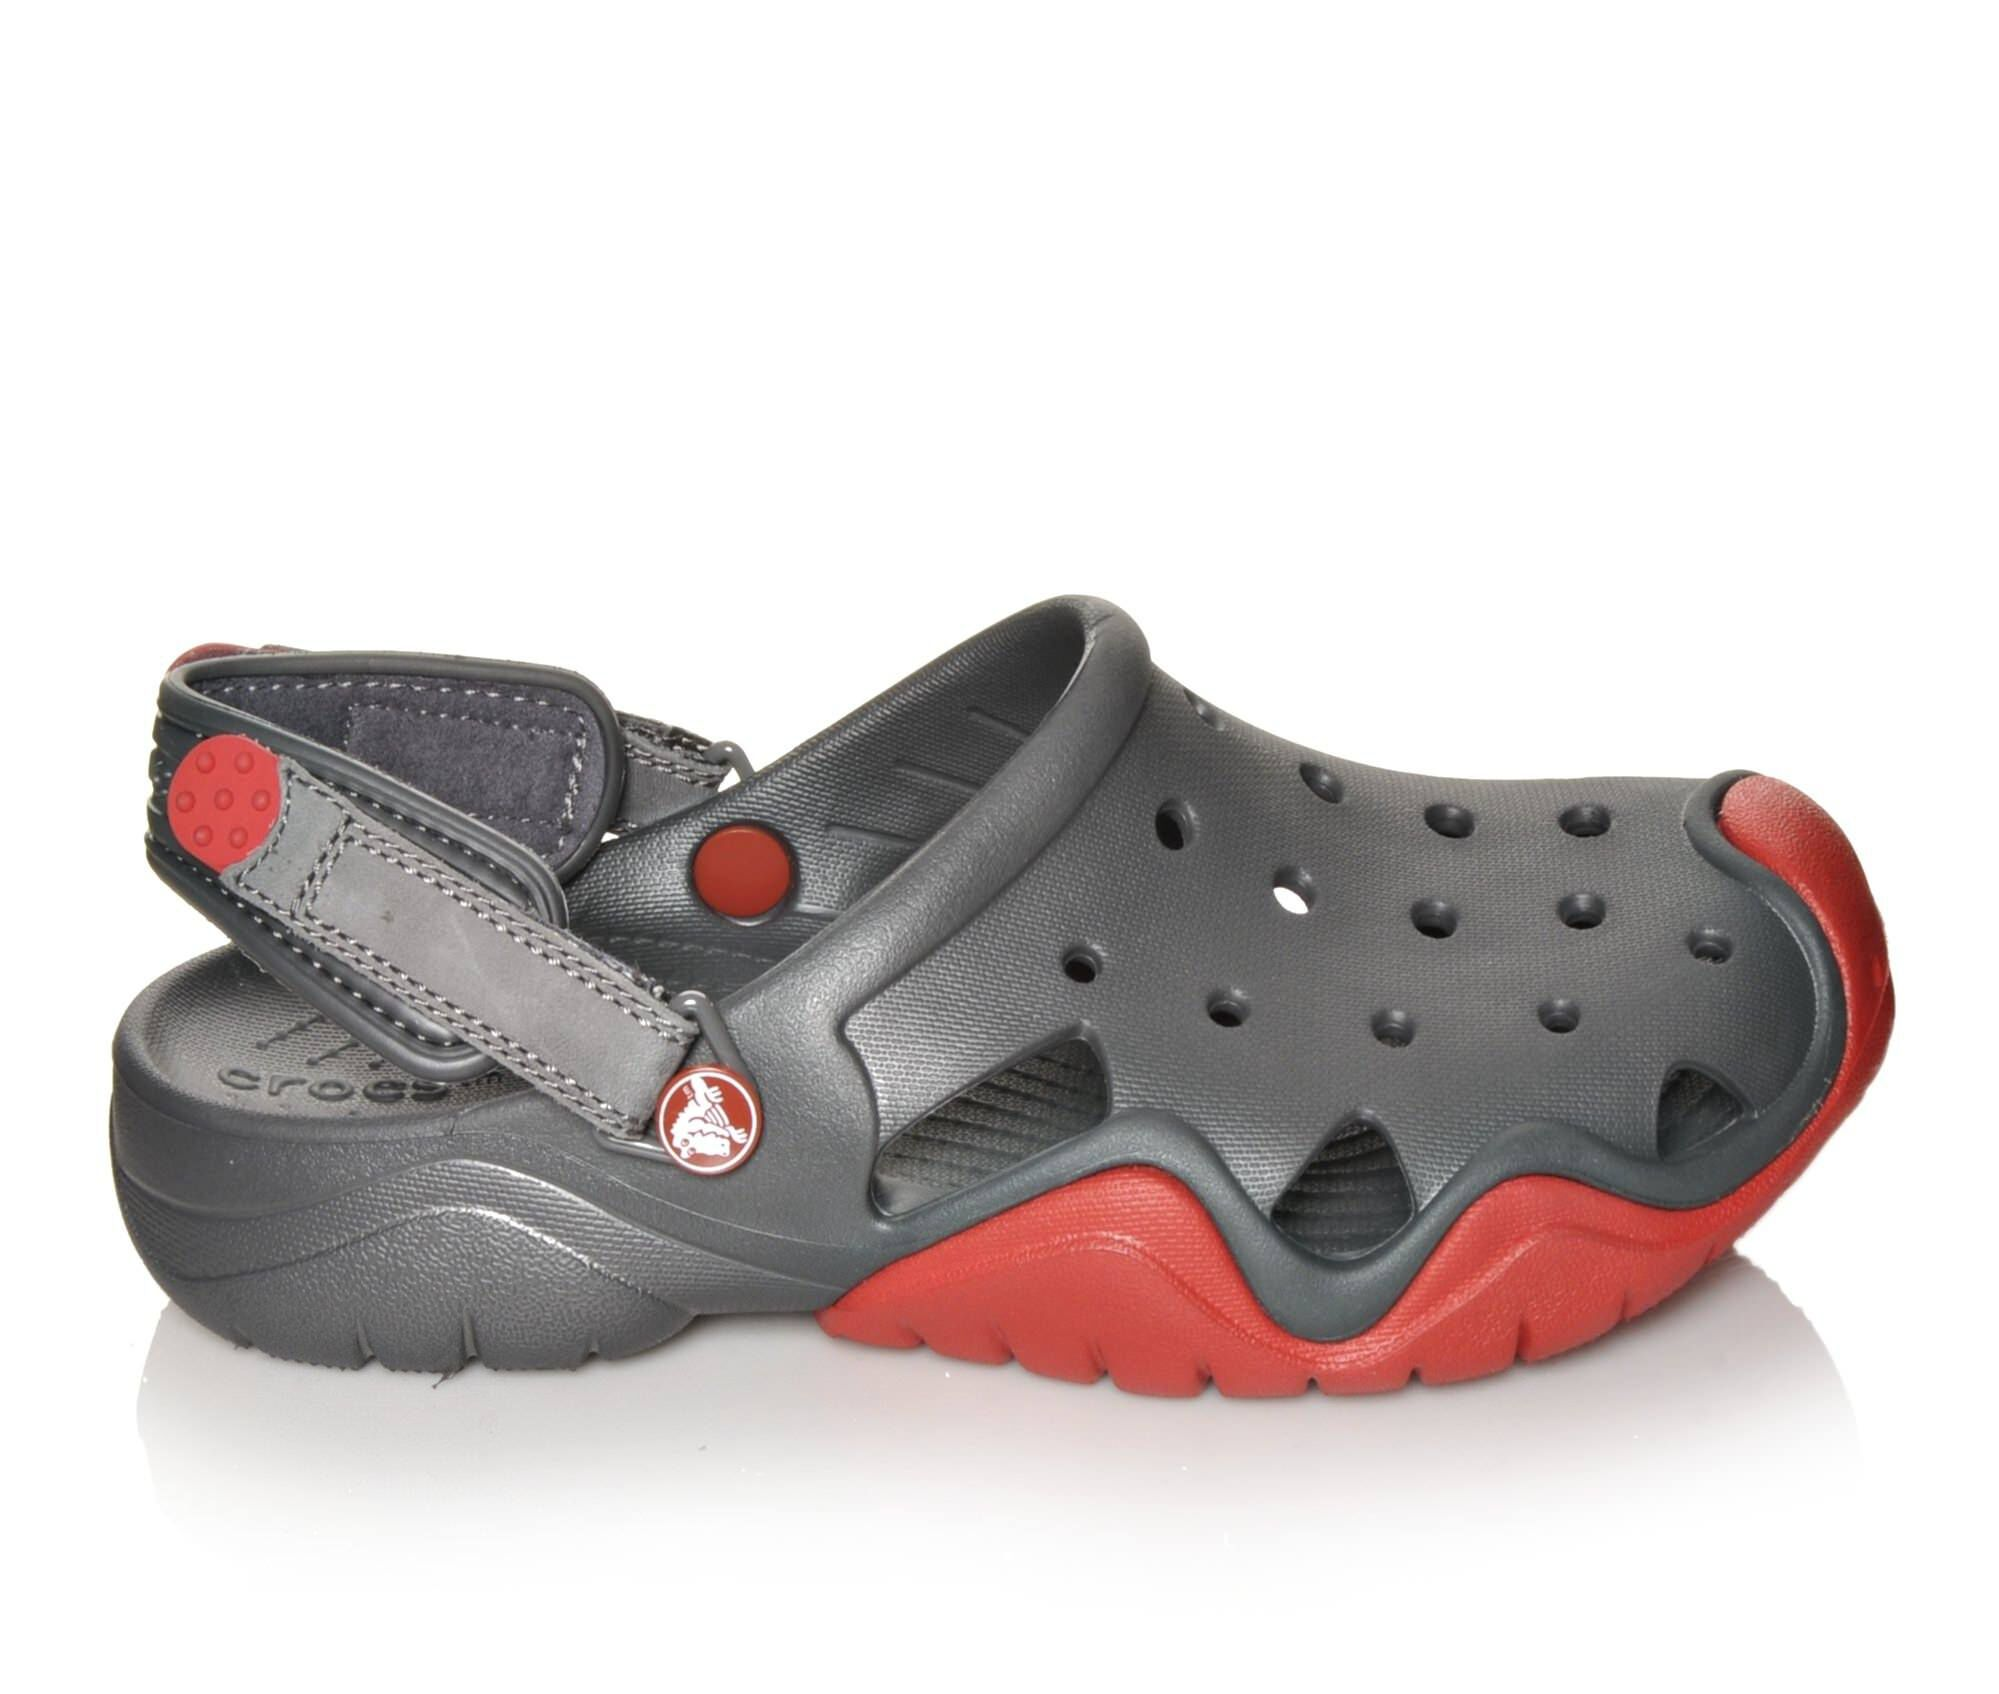 Crocs Shoes  Crocs Swiftwater Clog Mens Casual Shoes GraphiteFlame